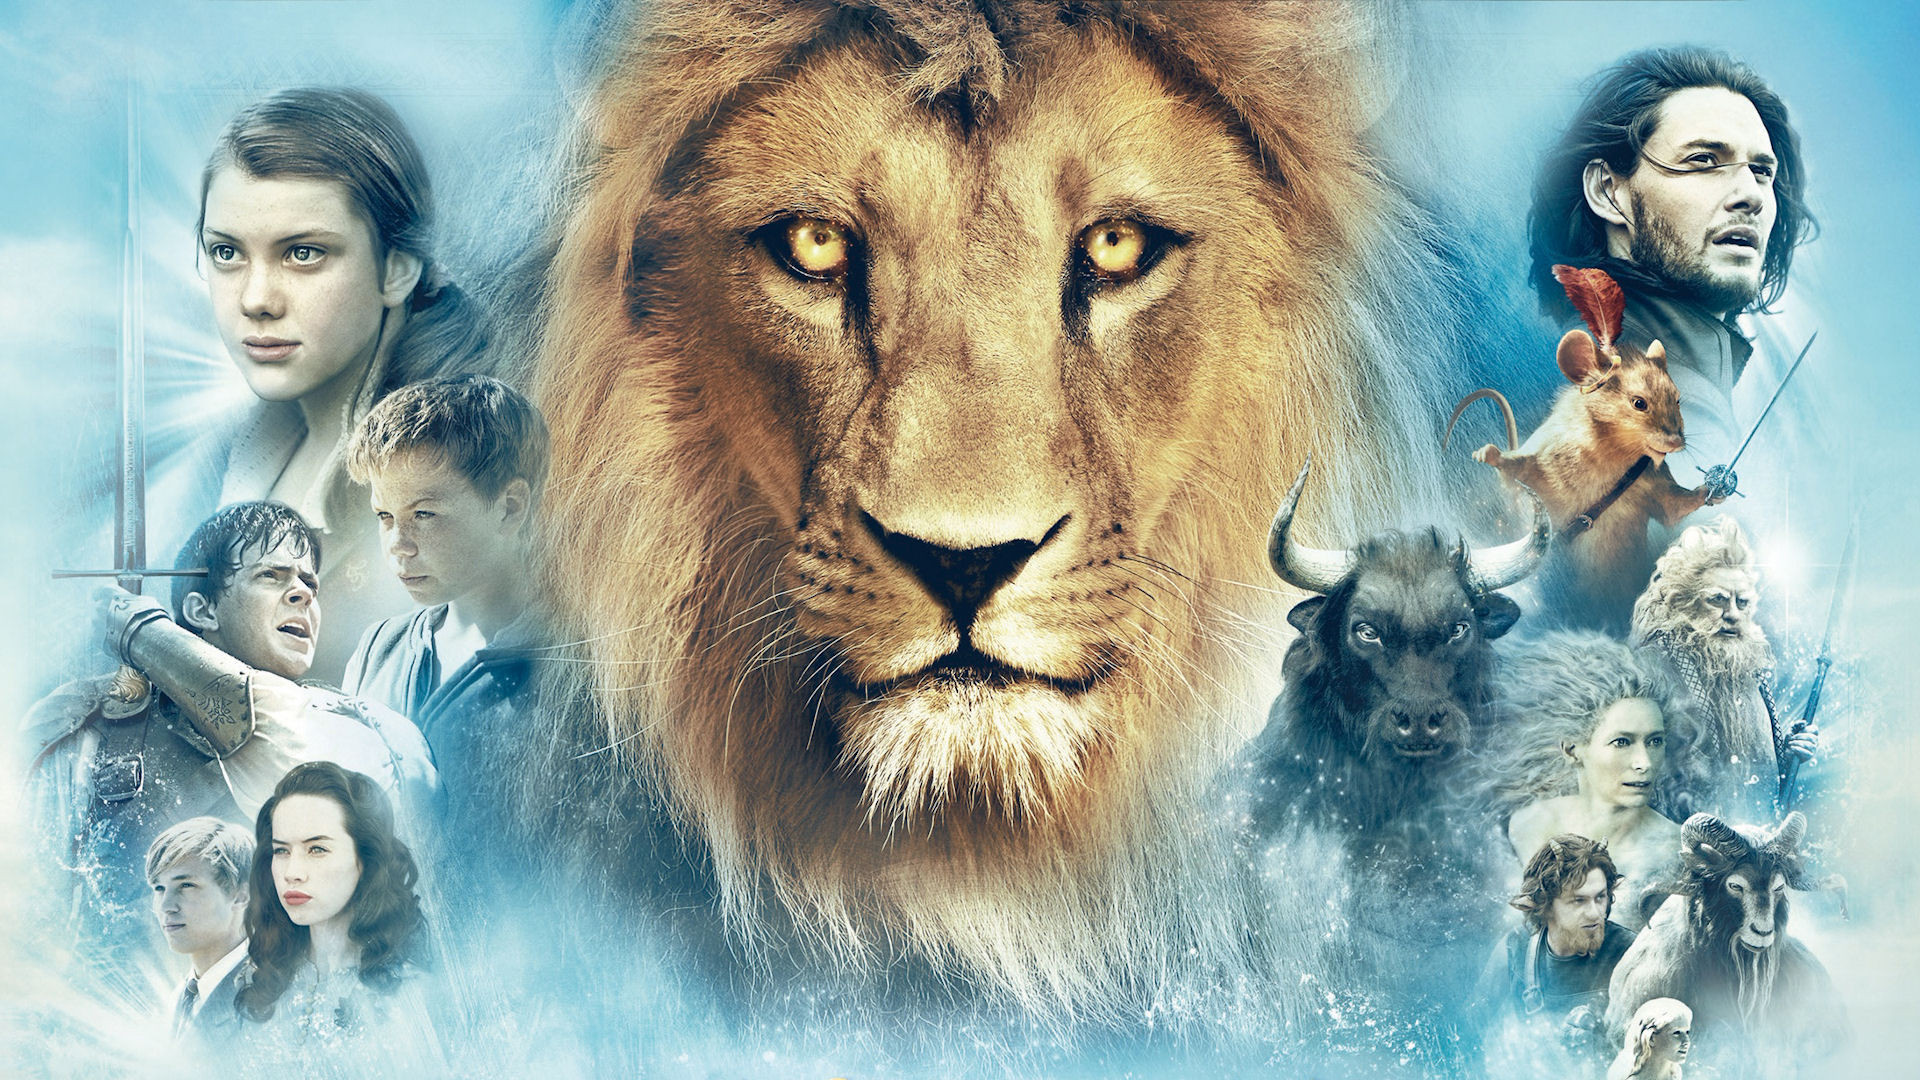 Res: 1920x1080, The chronicles of narnia-HD.jpg